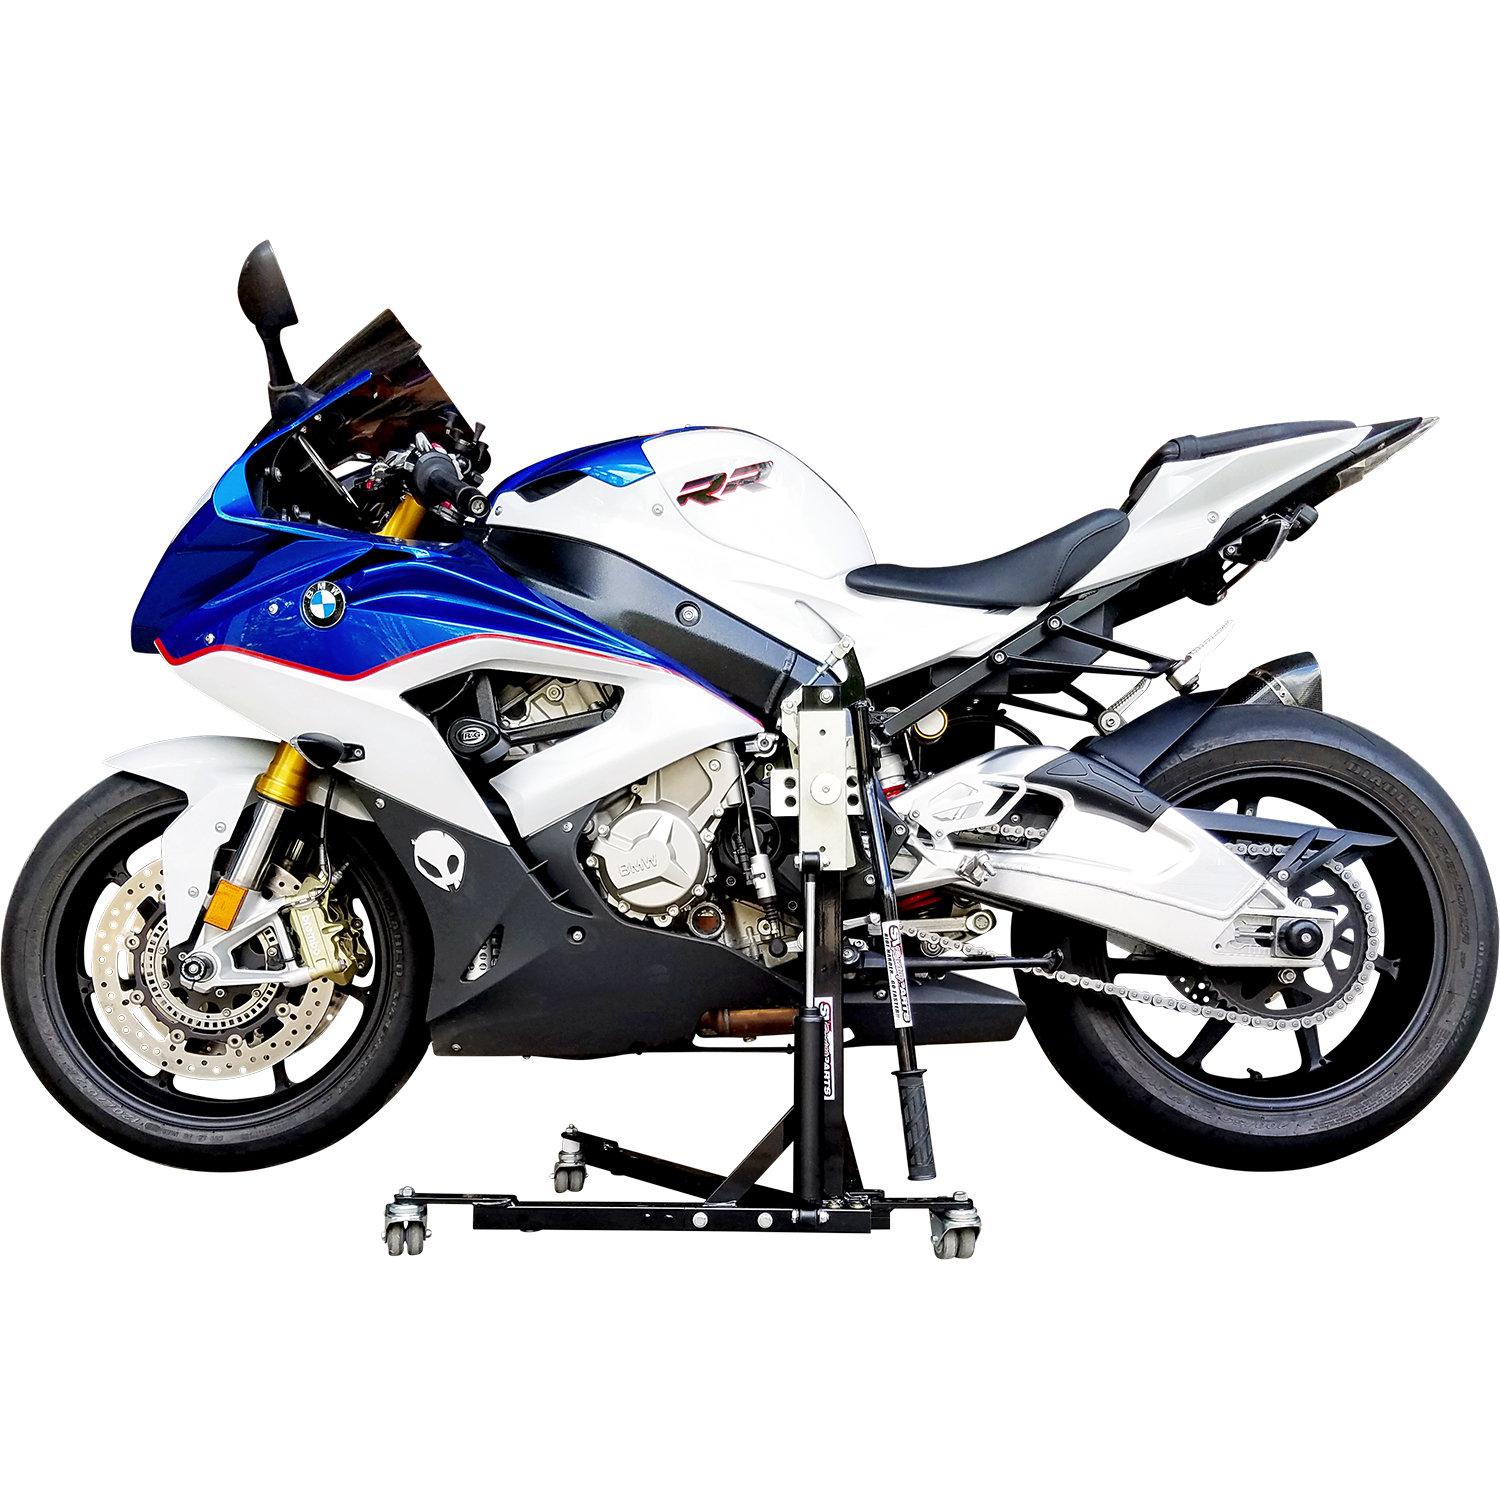 Black Custom Paddock Style Side Lift Stands BMW S1000RR - HP4 Models 2014 00459